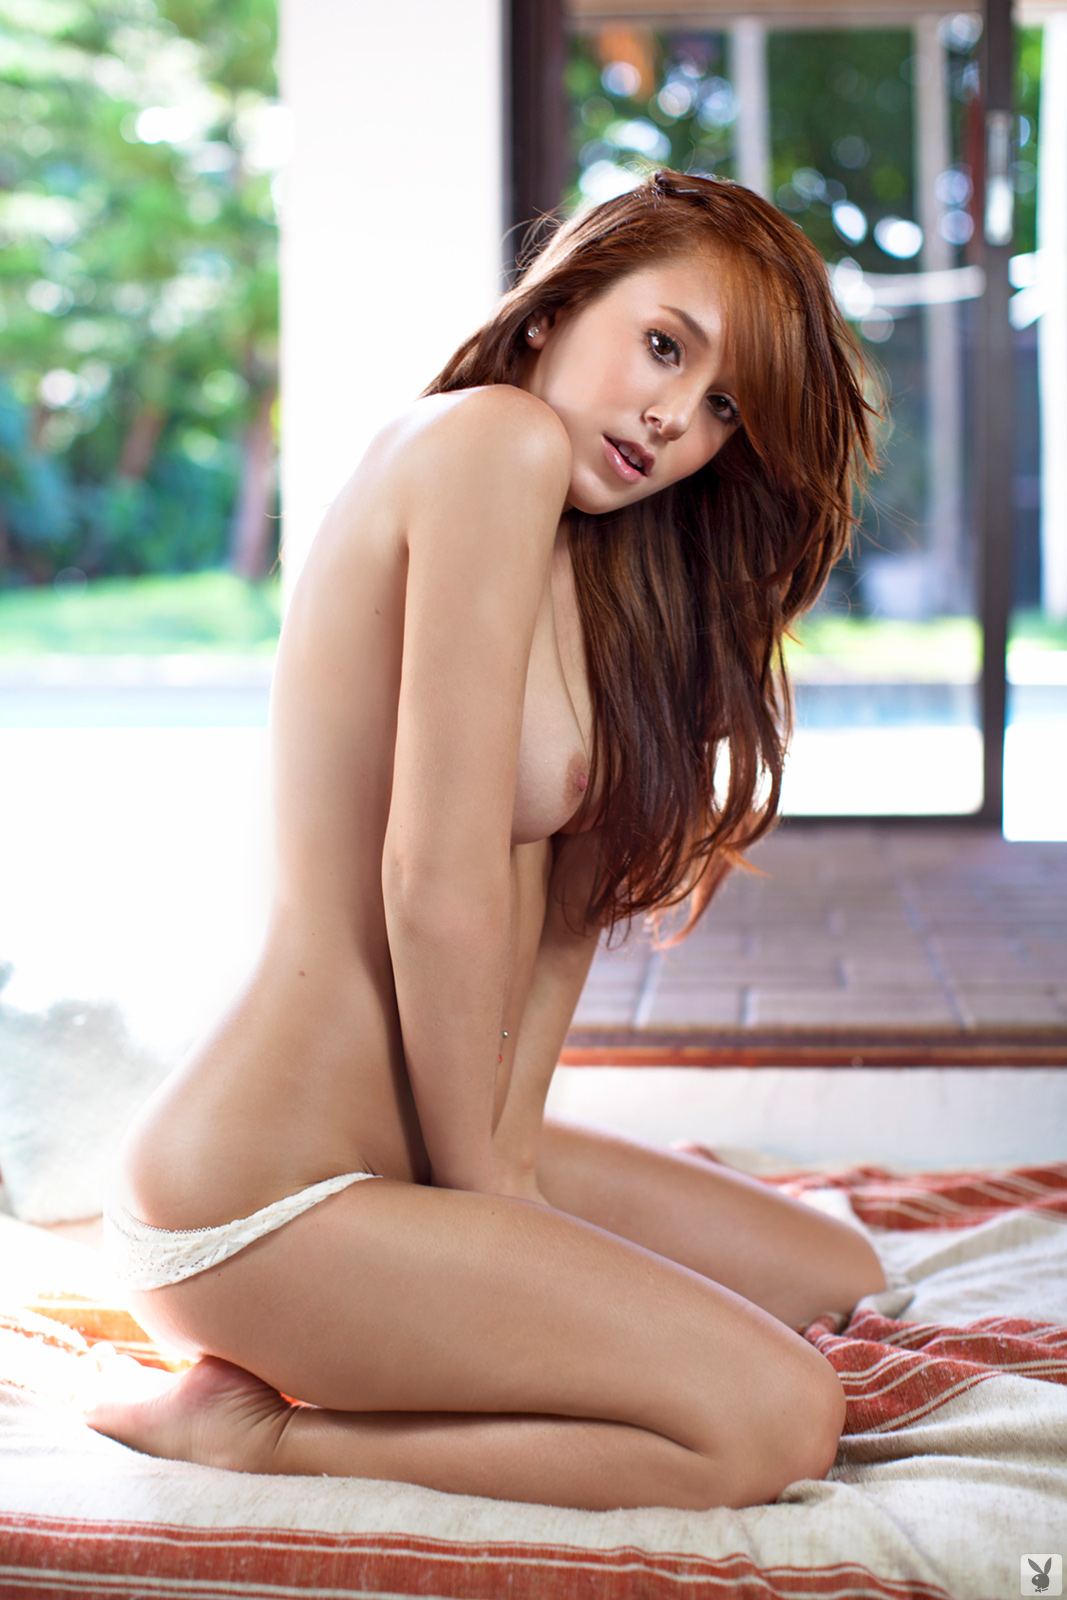 lauren-bethencourt-nude-redhead-bed-playboy-14